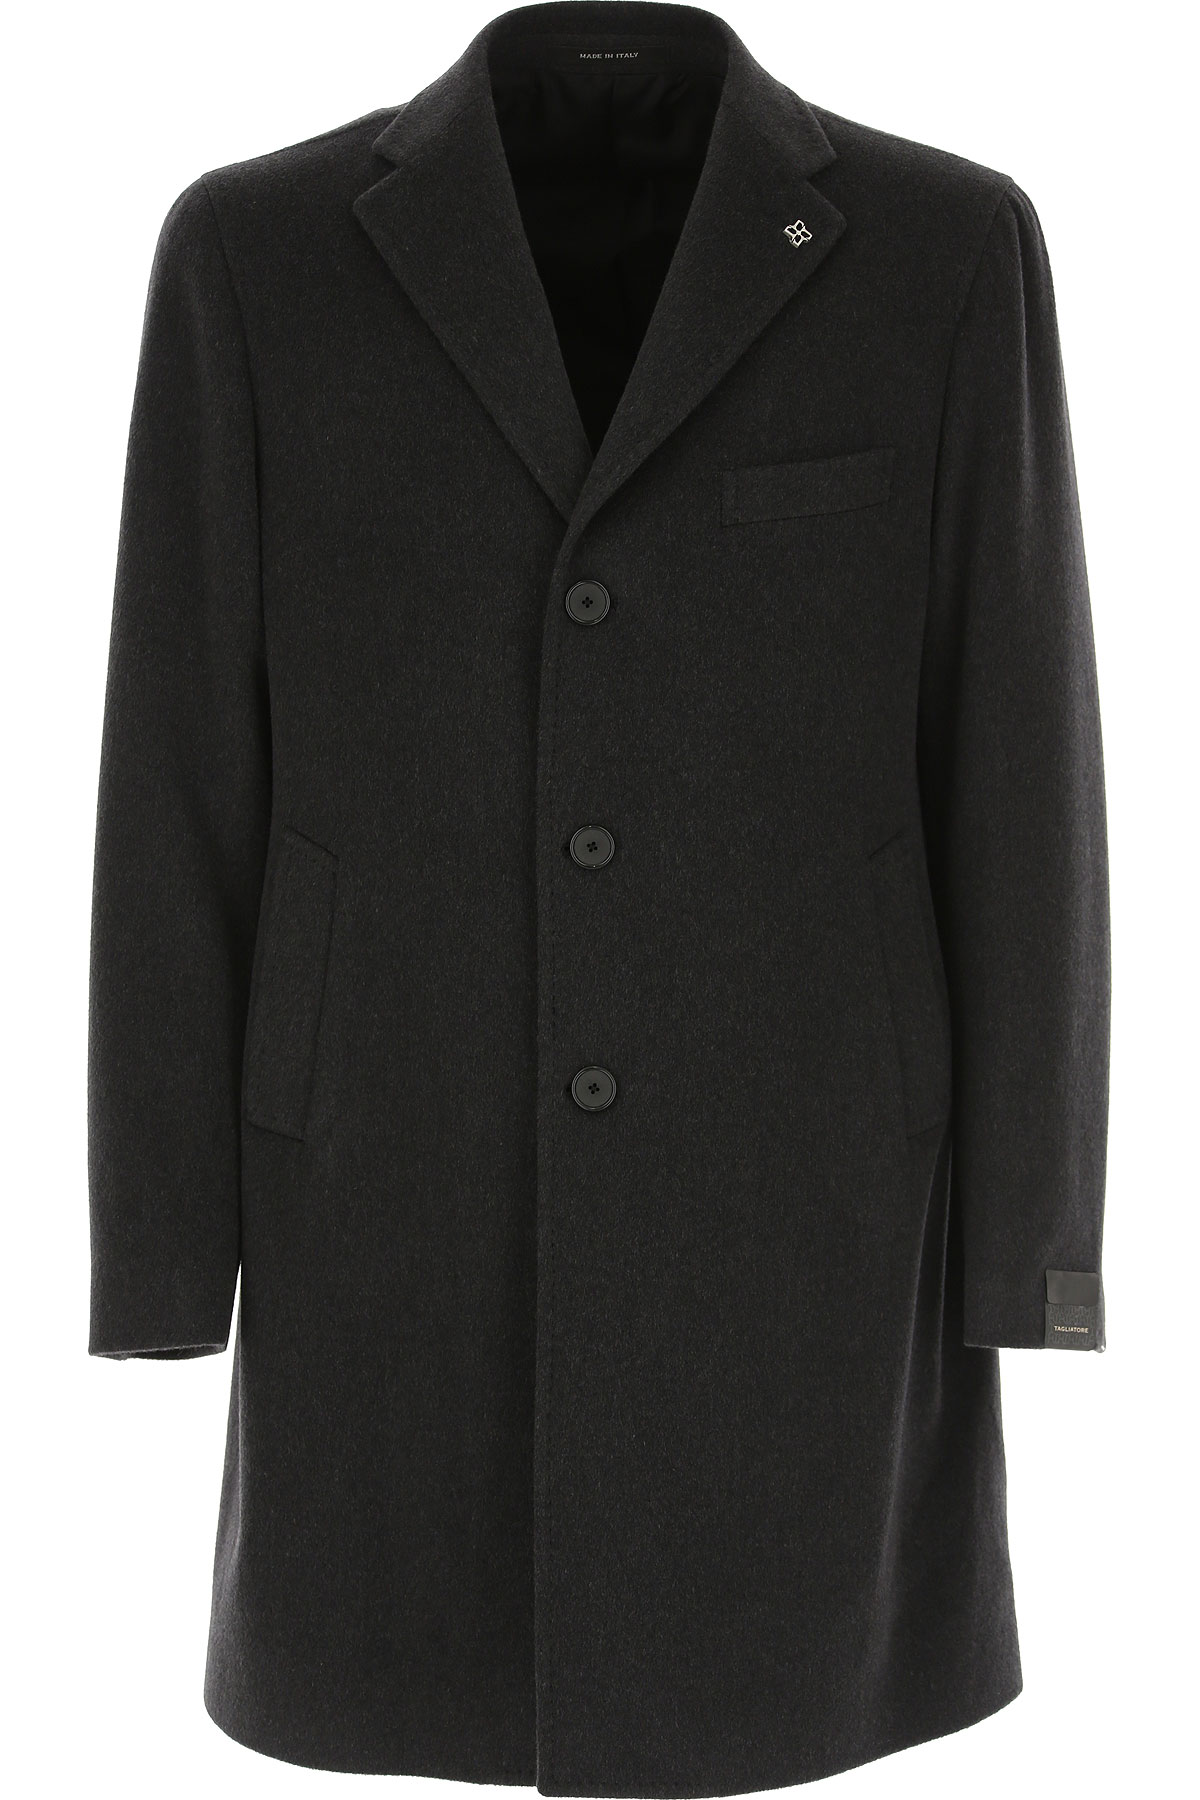 Tagliatore Men's Coat On Sale in Outlet, Dark Grey, Wool, 2019, L M XXL